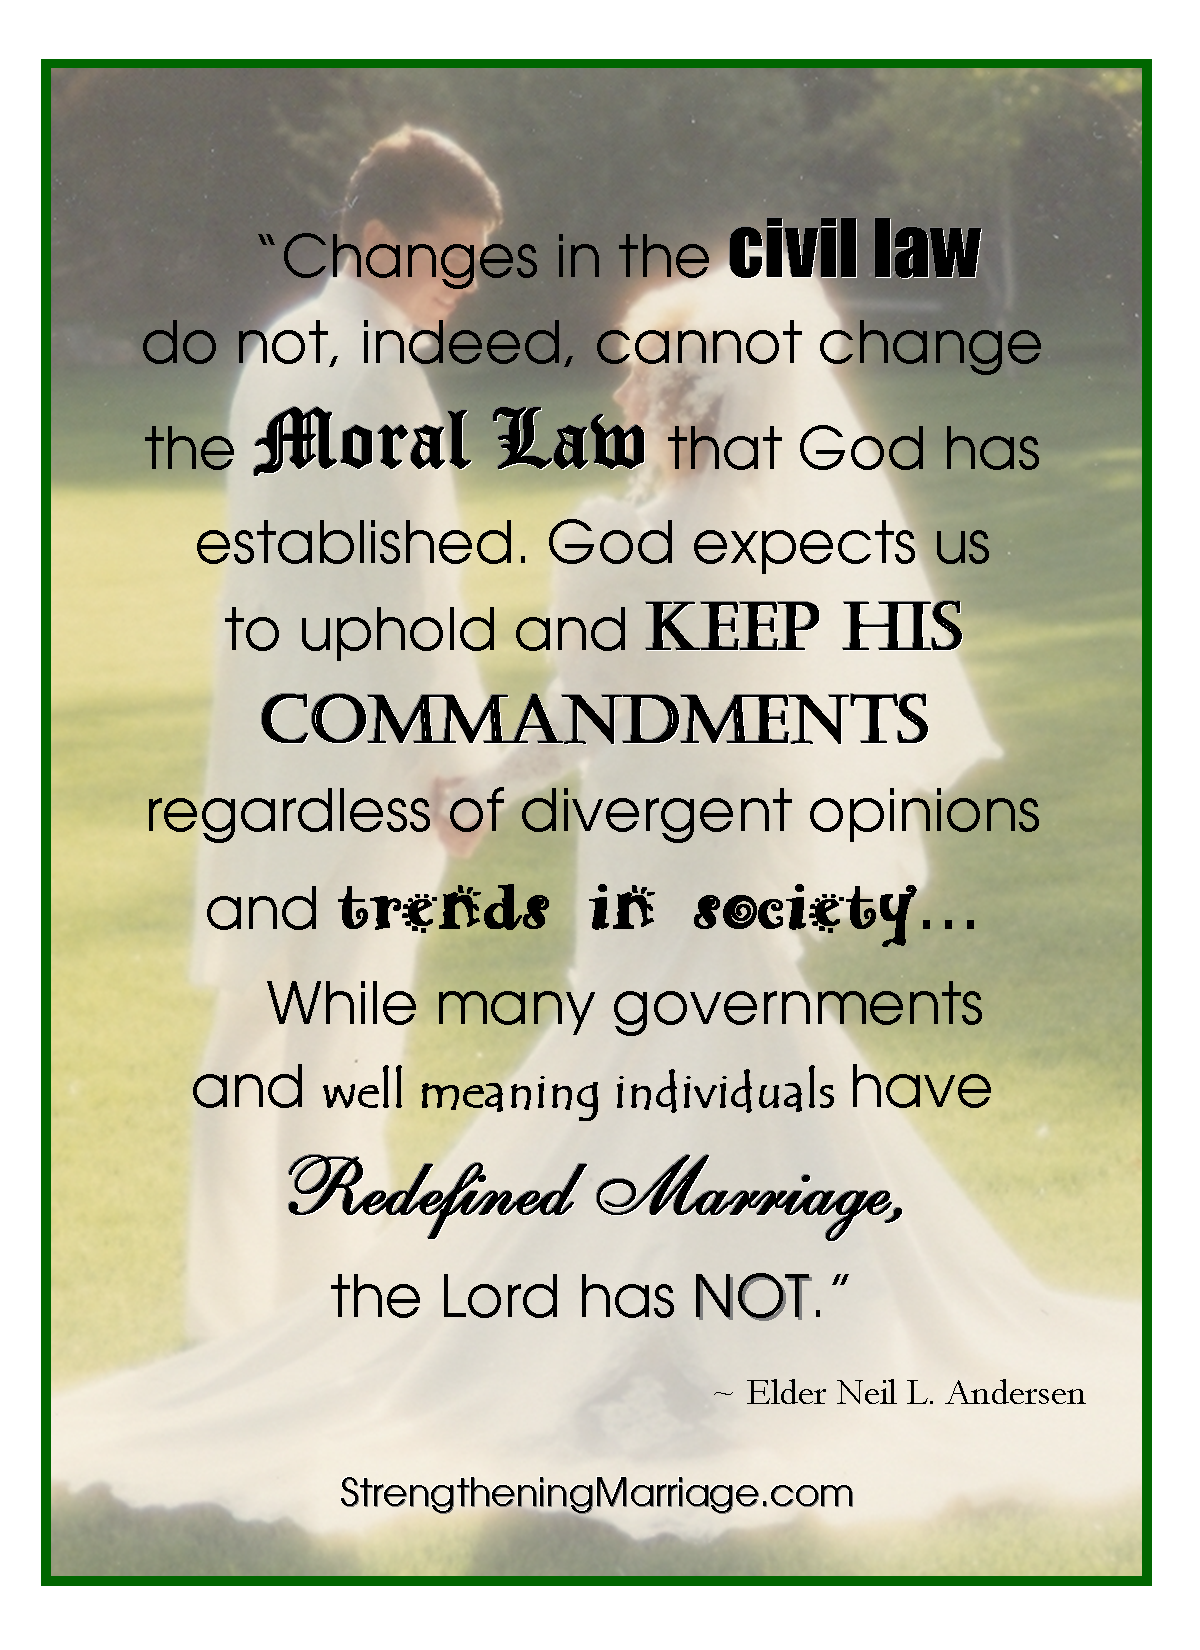 God Expects Us To Uphold And Keep His Commandments Regardless Of Divergent  Opinions And Trends ...